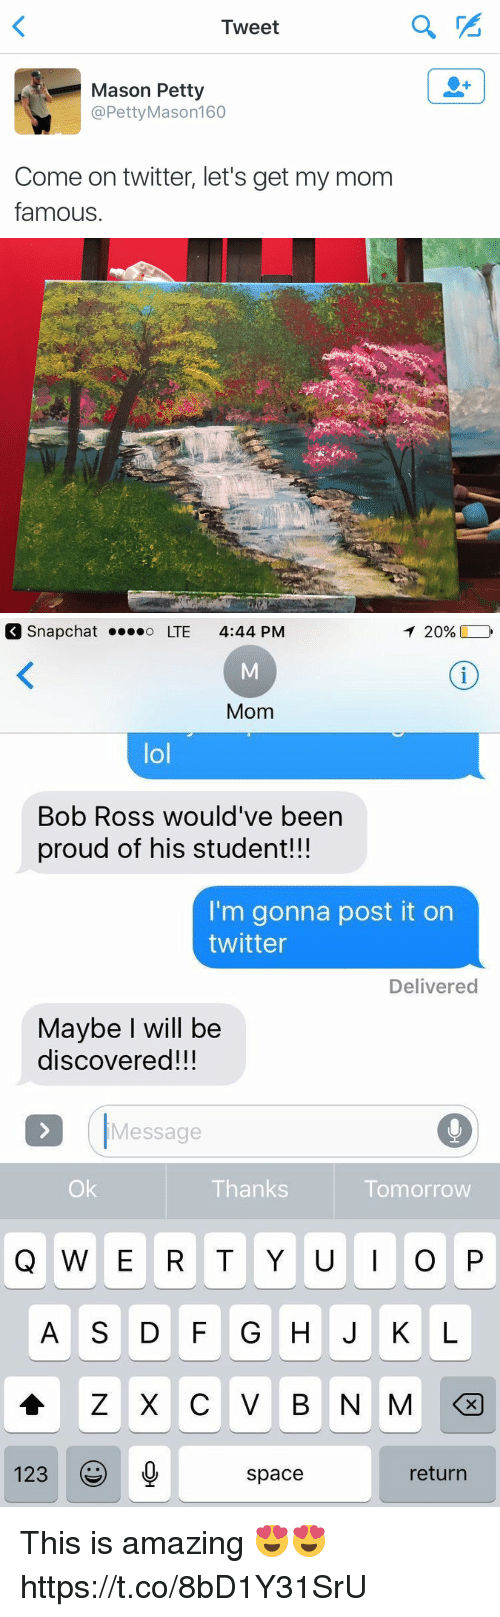 """Ÿ """": Tweet  Mason Petty  @Petty Mason 160  Come on twitter, let's get my mom  famous   T 20%,  Snap Chat o LTE 4:44 PM  Mom  lol  Bob Ross would've been  proud of his student!!!  I'm gonna post it on  twitter  Delivered  Maybe will be  discovered!!!  Message  Thanks  Tomorrow  Q W E R T Y U I O P  123  return  space This is amazing 😍😍 https://t.co/8bD1Y31SrU"""